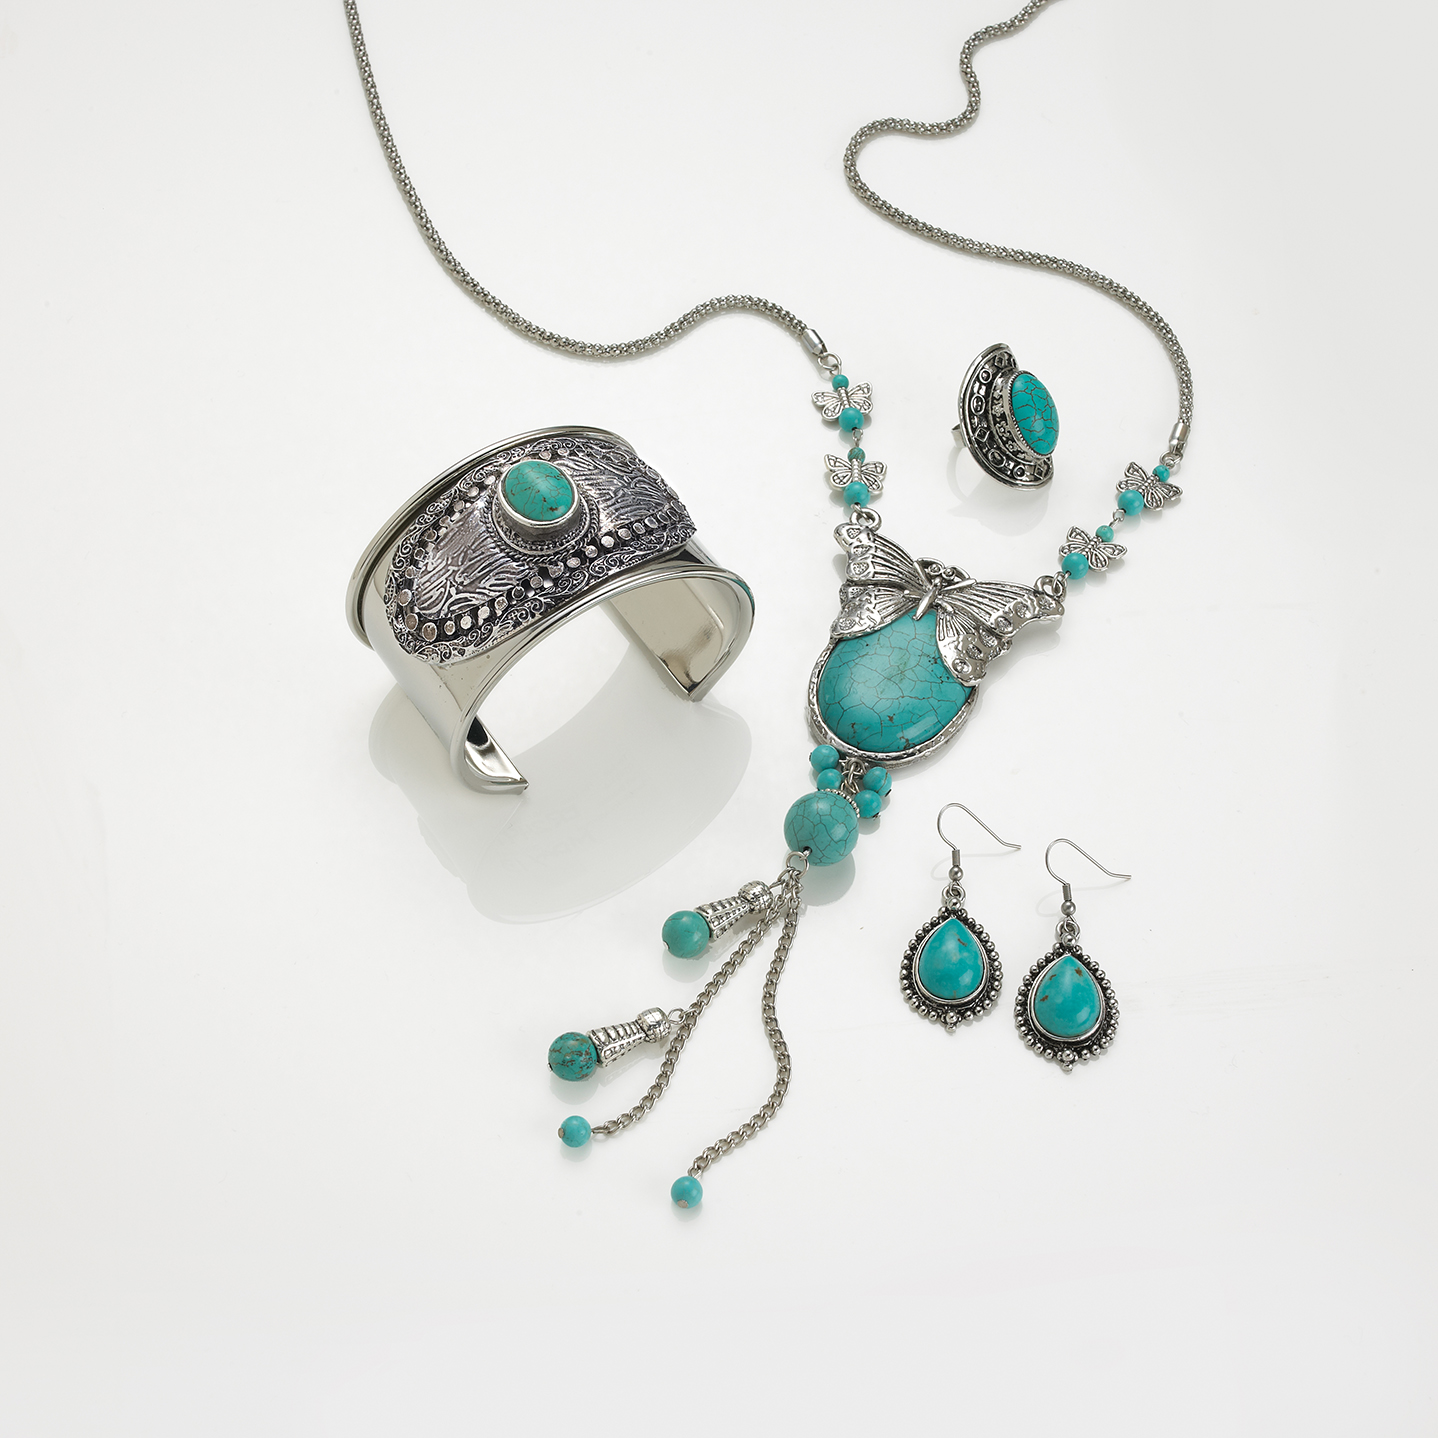 Photography - Jewellery Silver and Turquoise Necklace and Bracelet